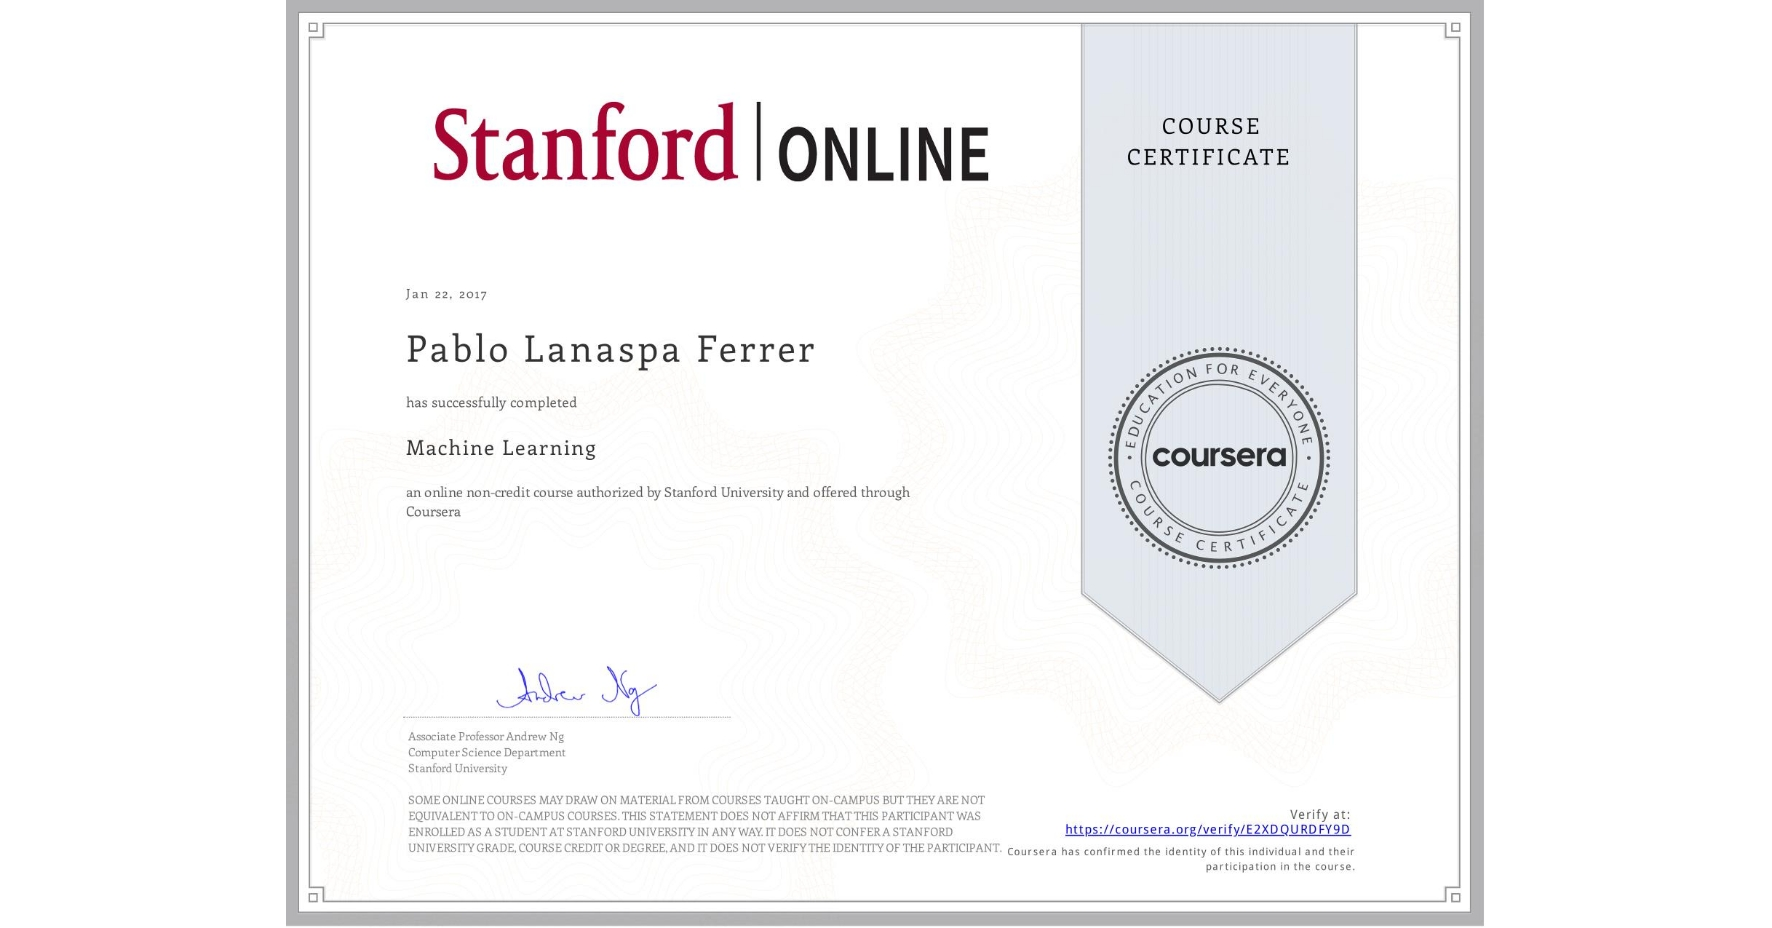 View certificate for Pablo Lanaspa Ferrer, Machine Learning, an online non-credit course authorized by Stanford University and offered through Coursera